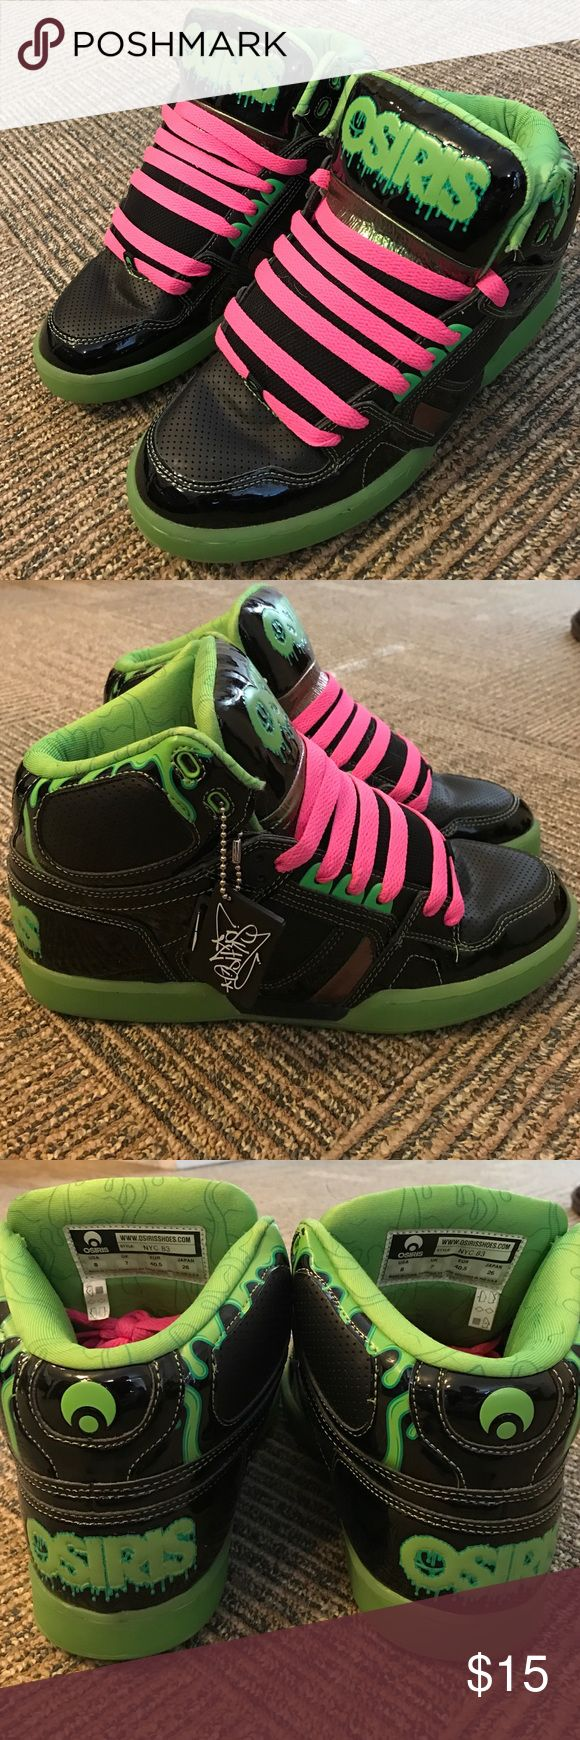 Osiris Shoes NEVER WORN. Lime green and black authentic Osiris kicks with hot pink laces. They are brand new with out the box. Size 8 in mens, equivalent to about 9 in women's. Originally $6. Osiris Shoes Sneakers